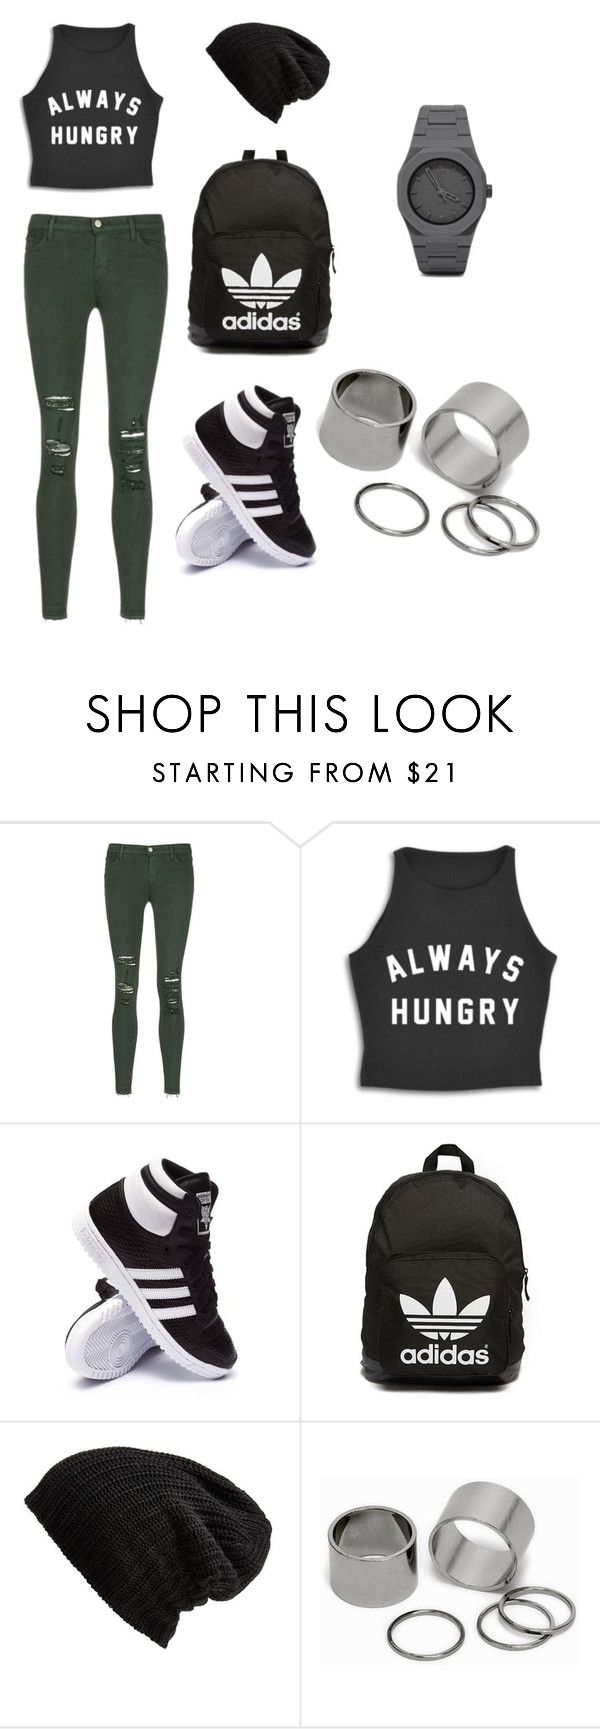 """""""Kathrin's casual day"""" by barabait ❤ liked on Polyvore featuring J Brand, adidas, adidas Originals, Free People, Pieces and CC"""